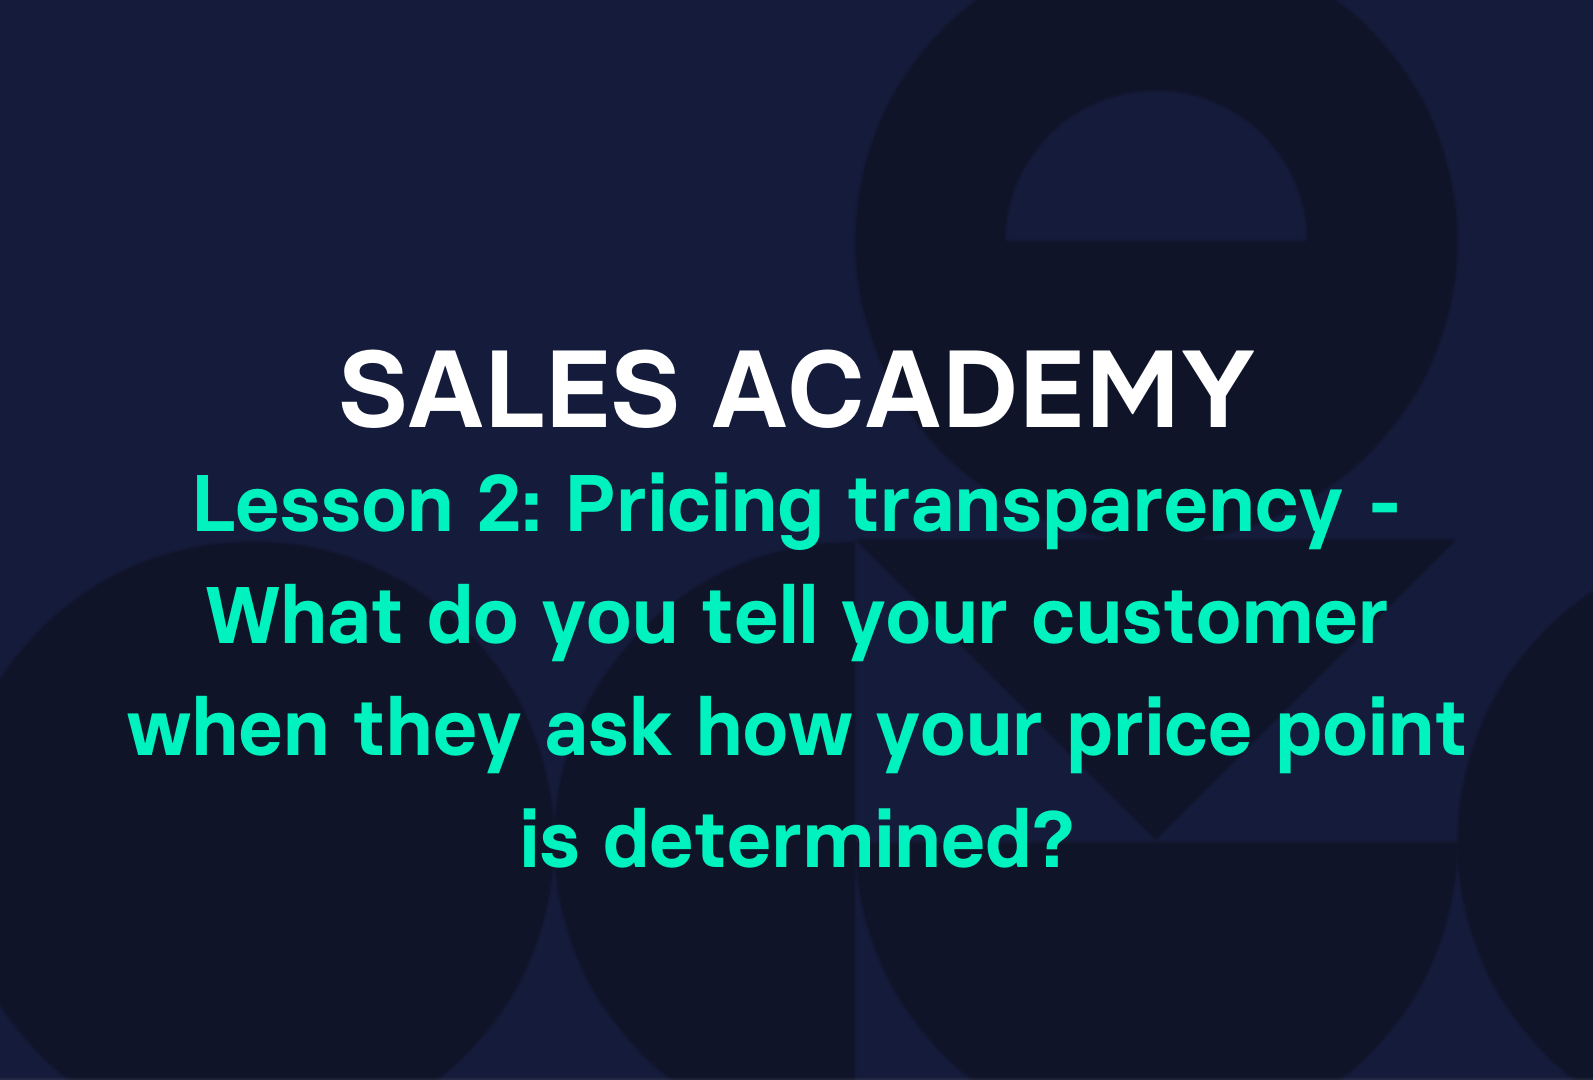 Lesson 2: Pricing transparency – What do you tell your customer when they ask how your price point is determined?